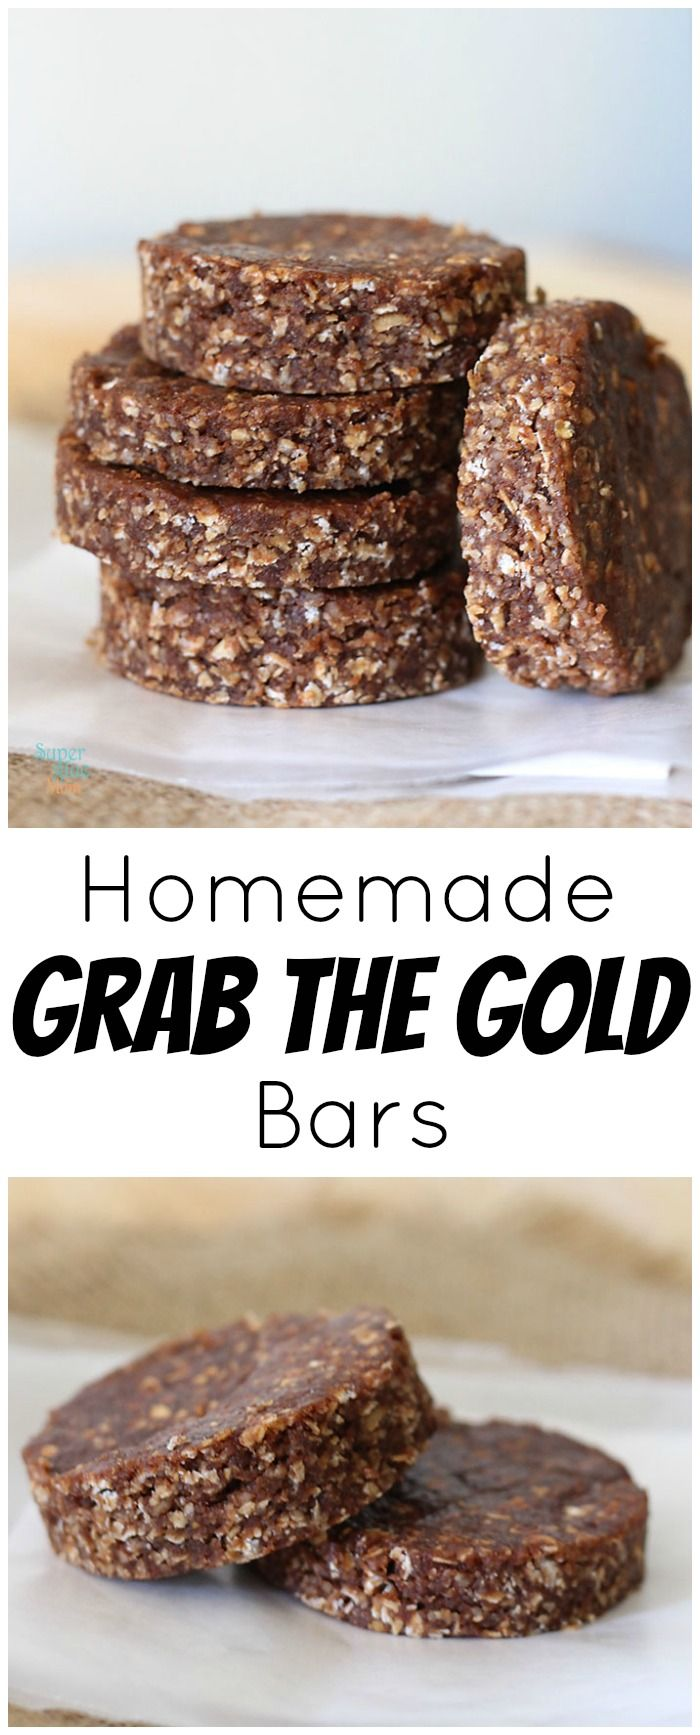 Homemade Grab the Gold Bars from LauraFuentes.com